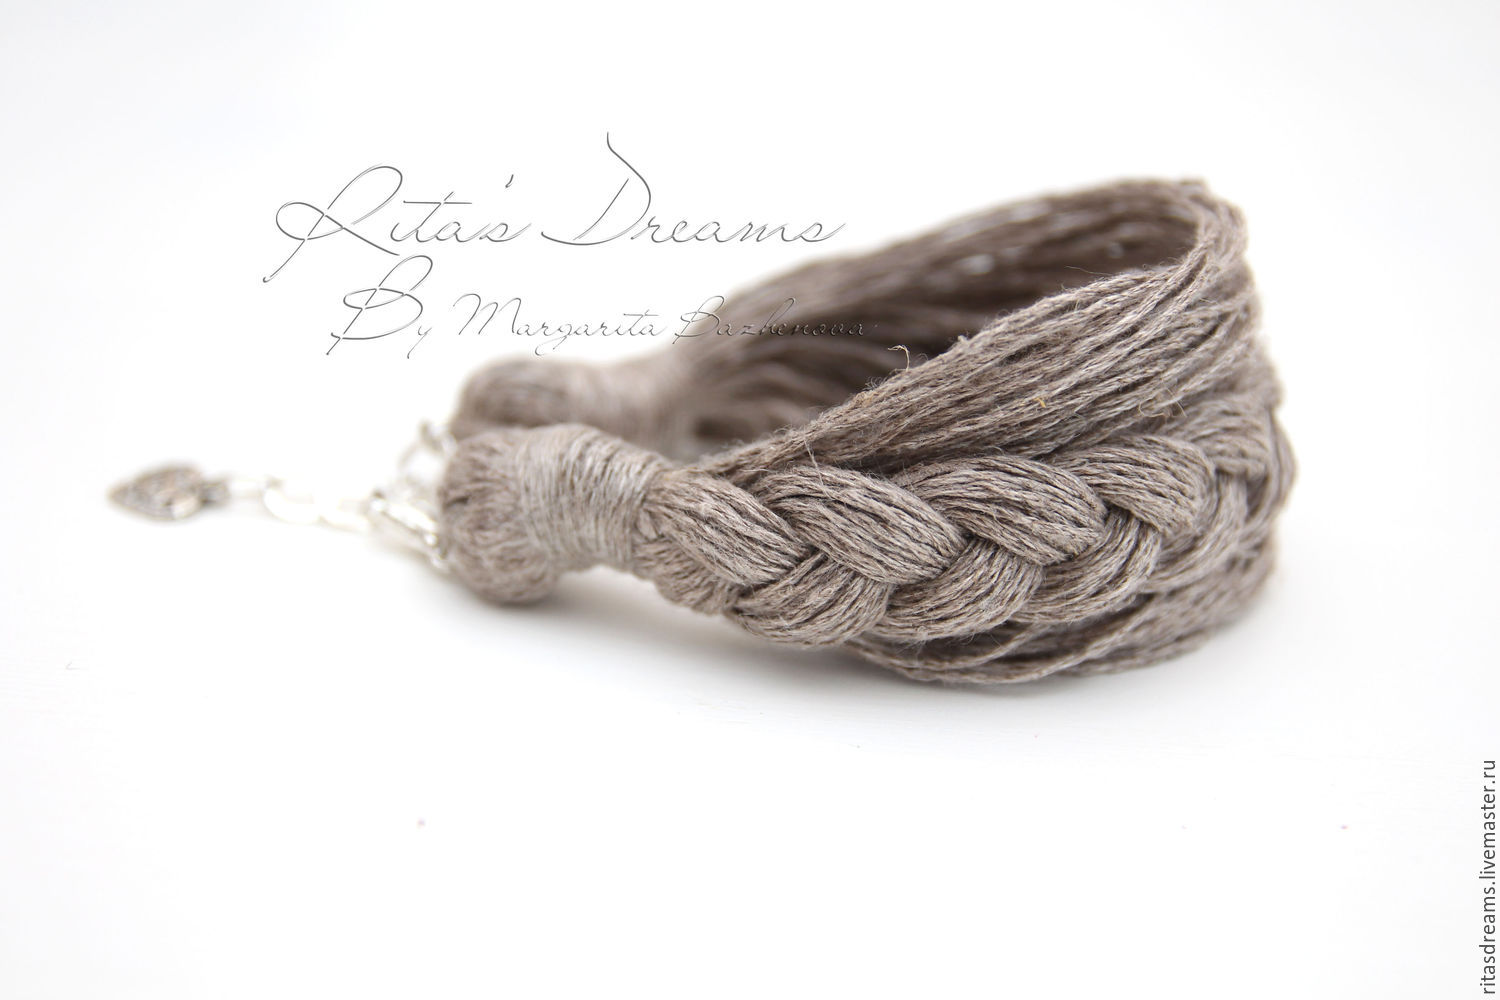 Bracelet made of natural linen undyed natural grey color is sleek accessory for lovers of natural style.